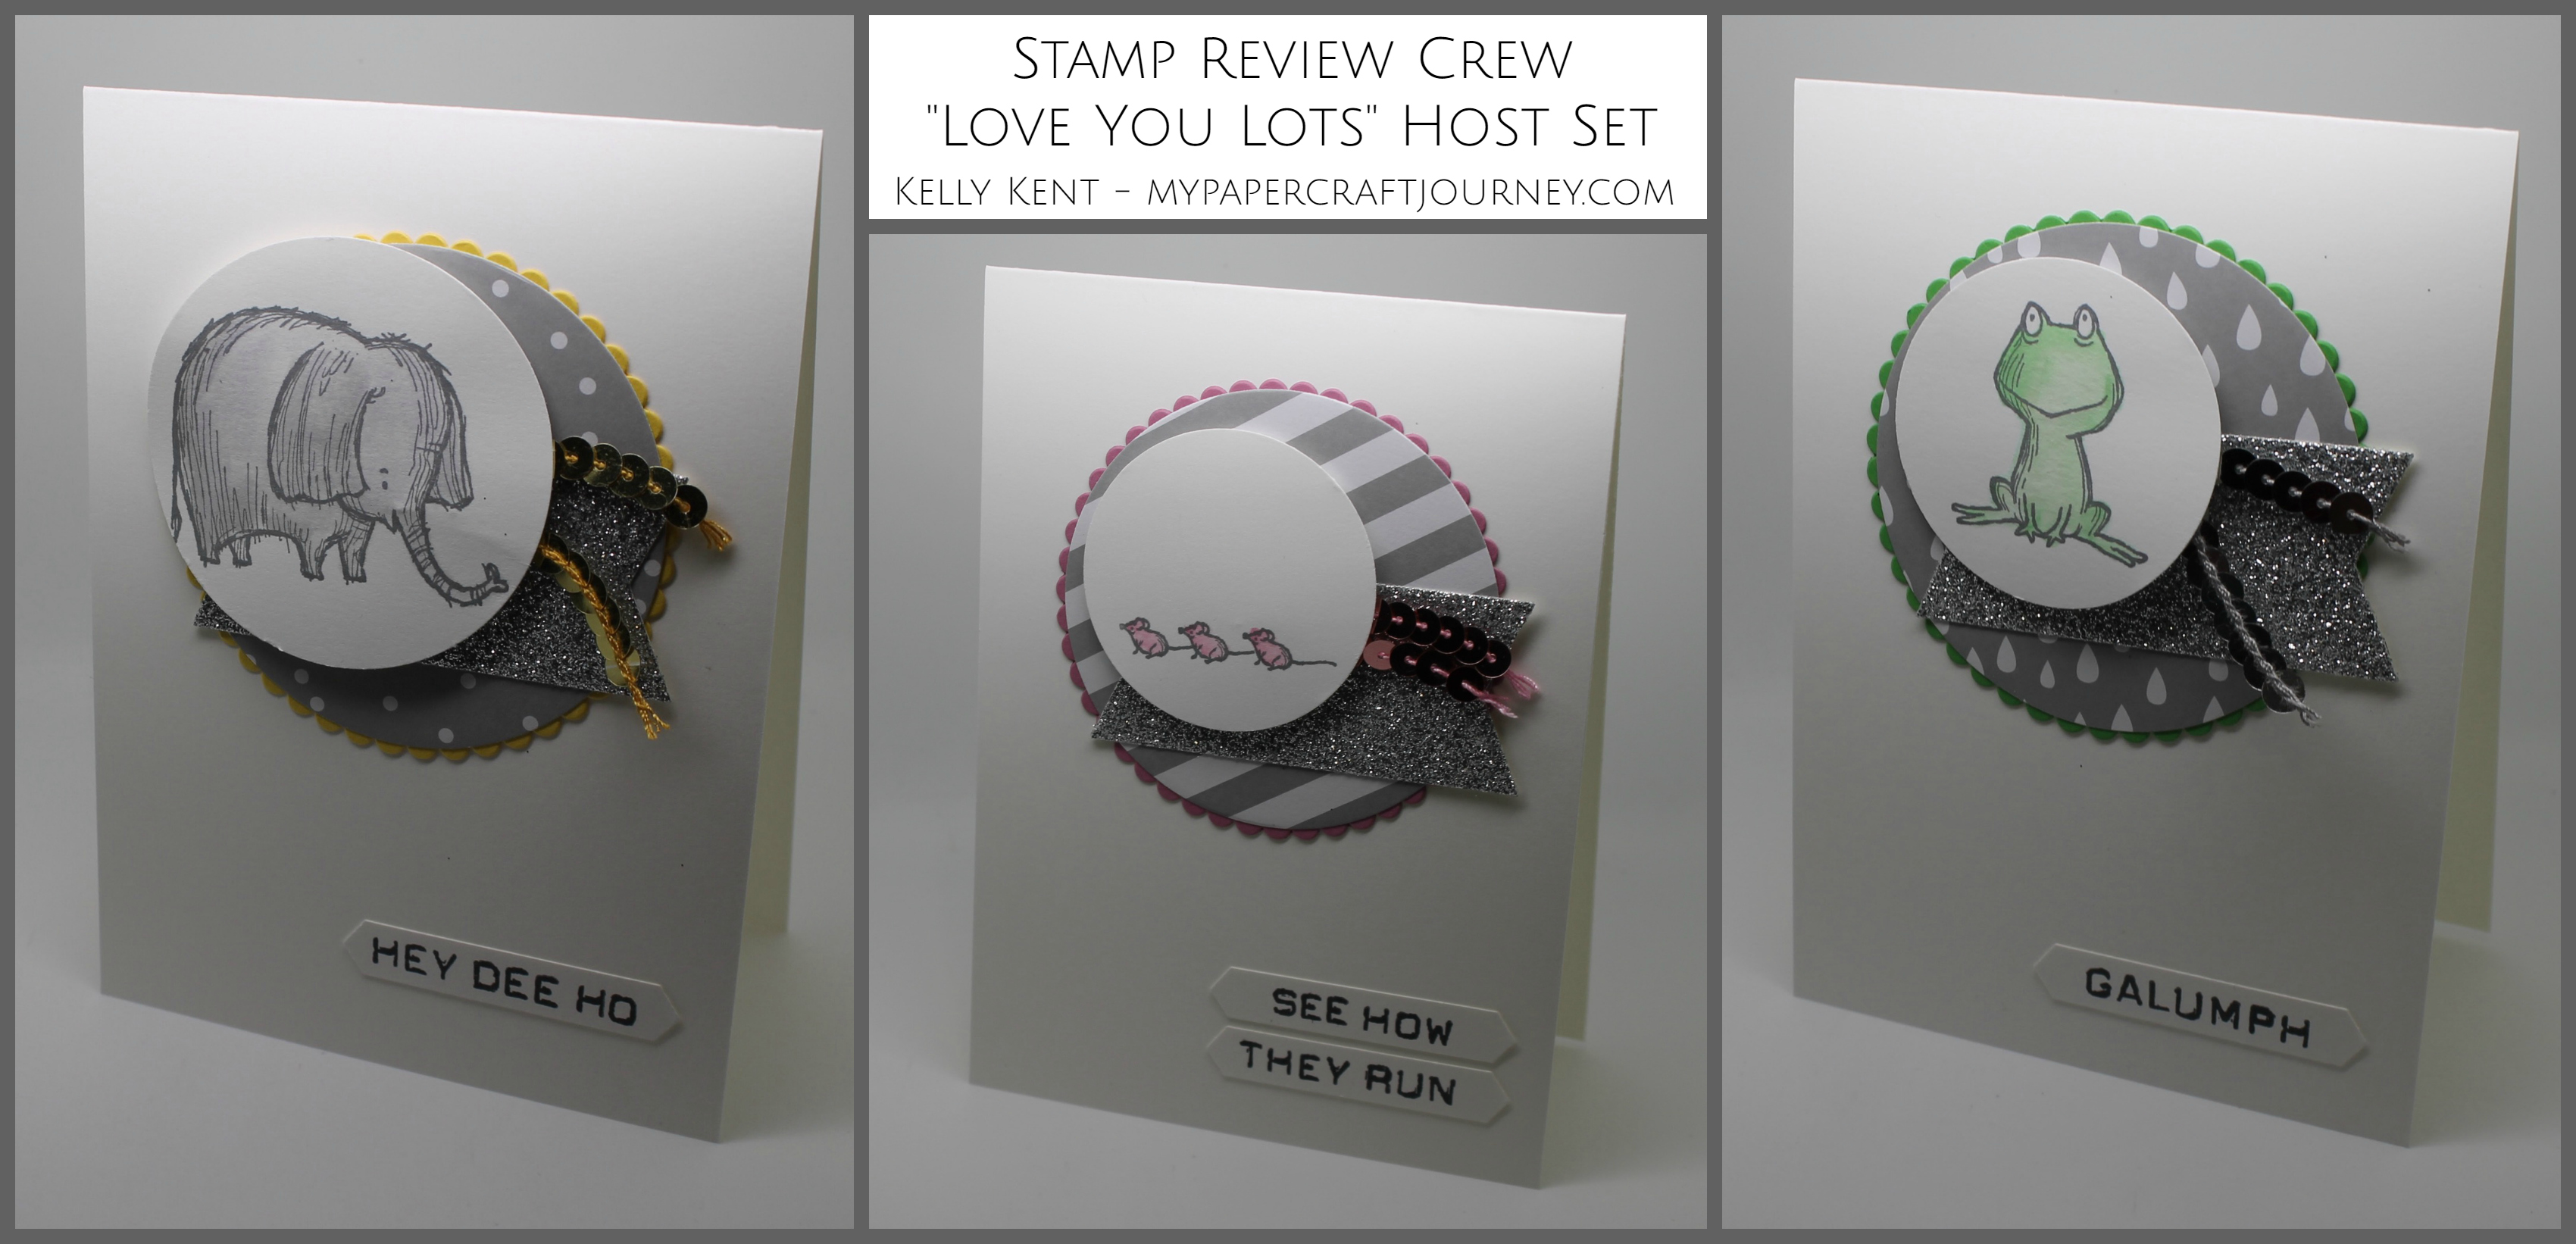 Stamp Review Crew - Love You Lots Host stamp set. Nursery Rhyme Set. Kelly Kent - mypapercraftjourney.com.